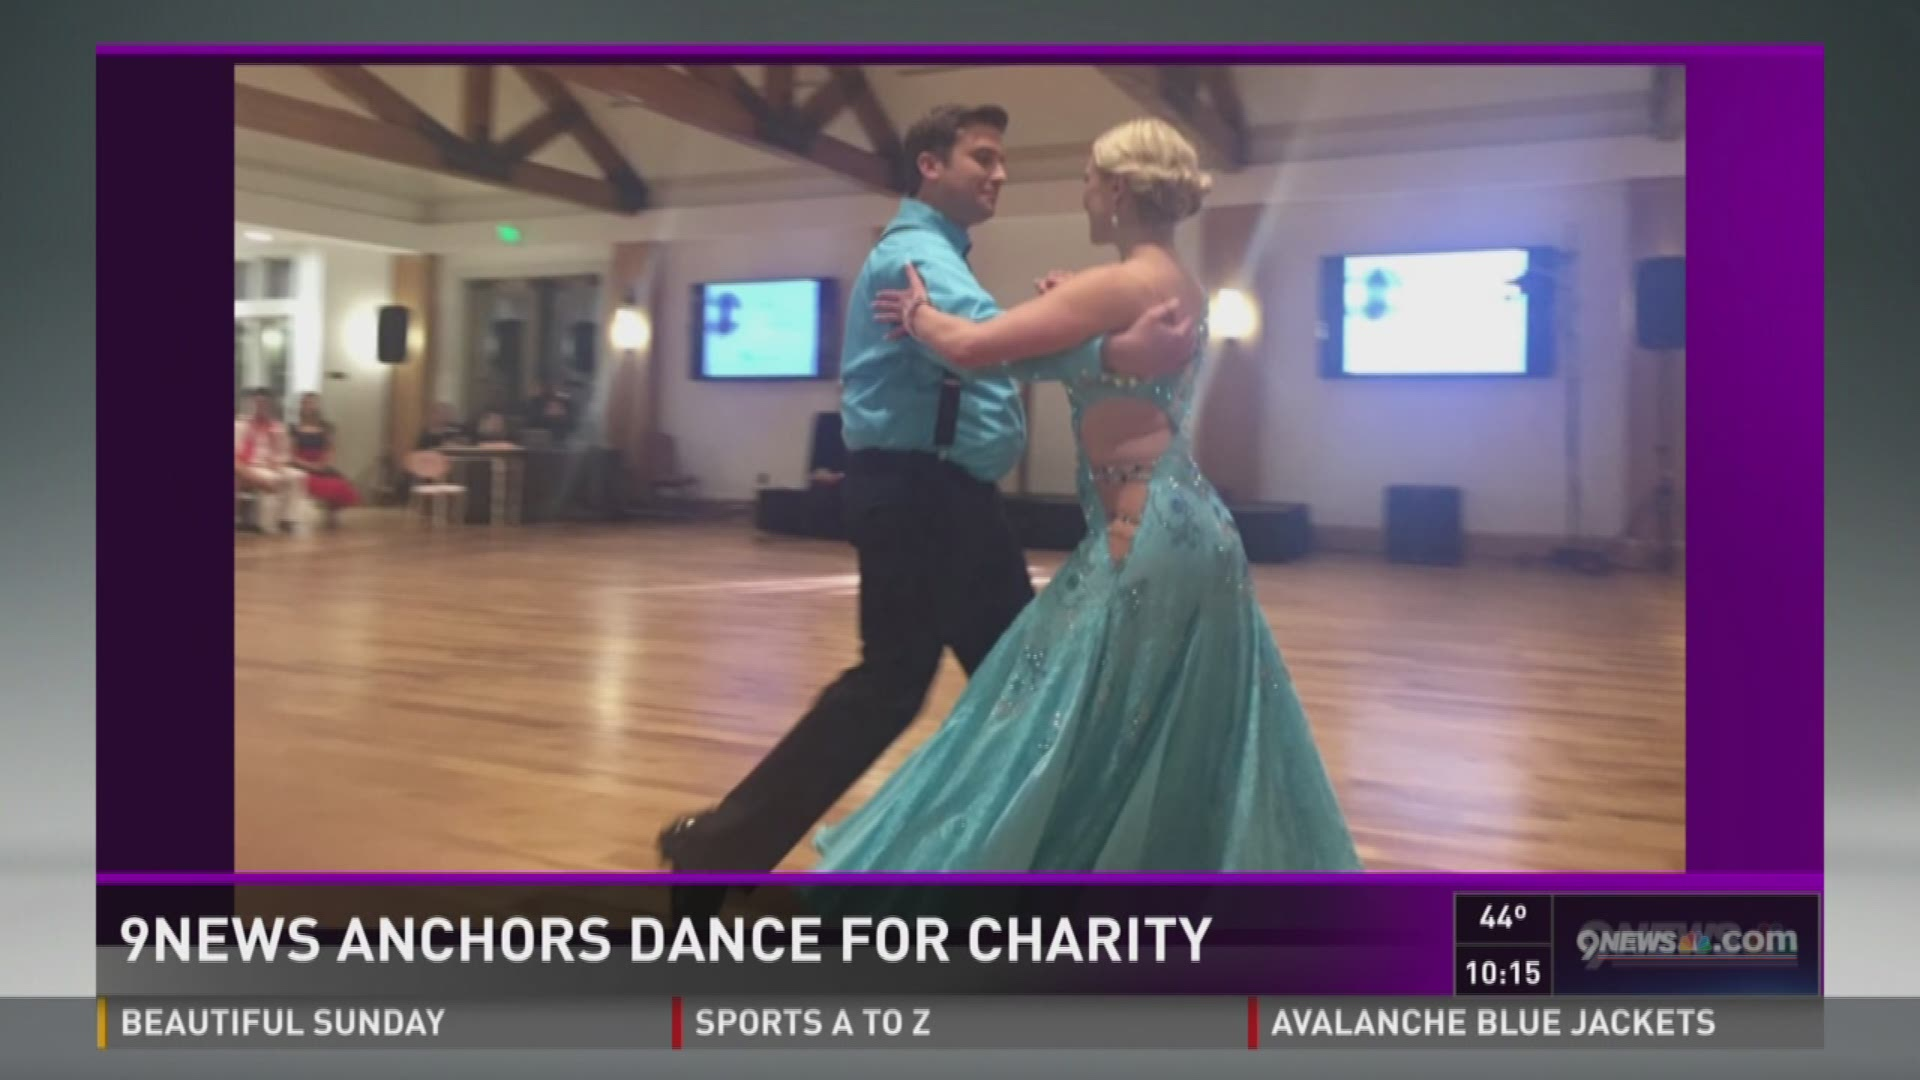 Danielle Grant wins Dancing With the Anchors